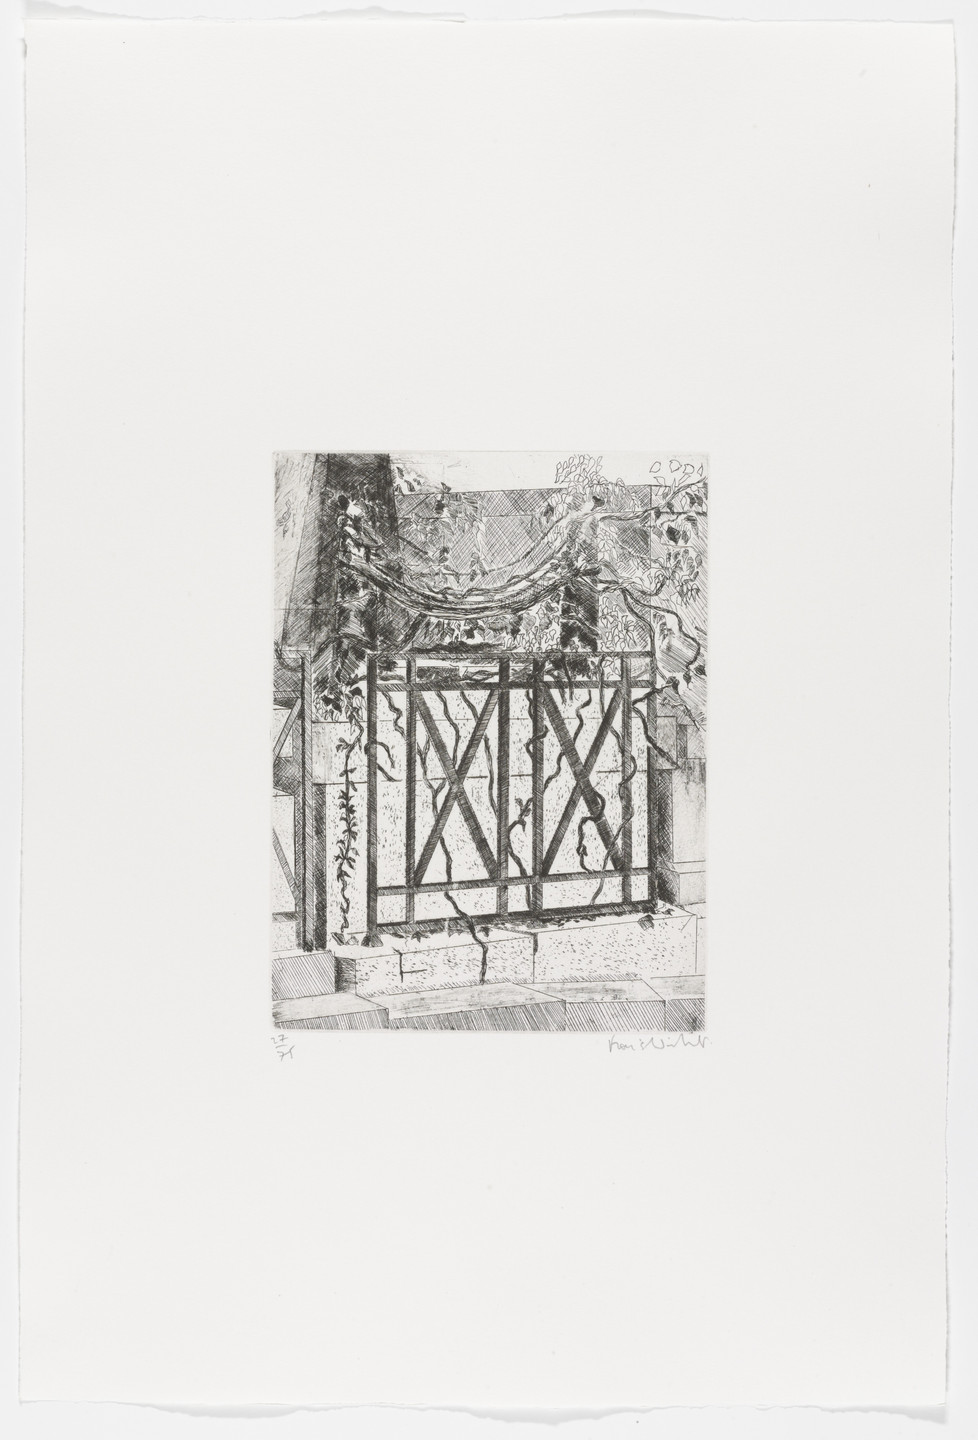 Francis Wishart. Allan Kardec (plate 18) from Le Pére Lachaise. 1978